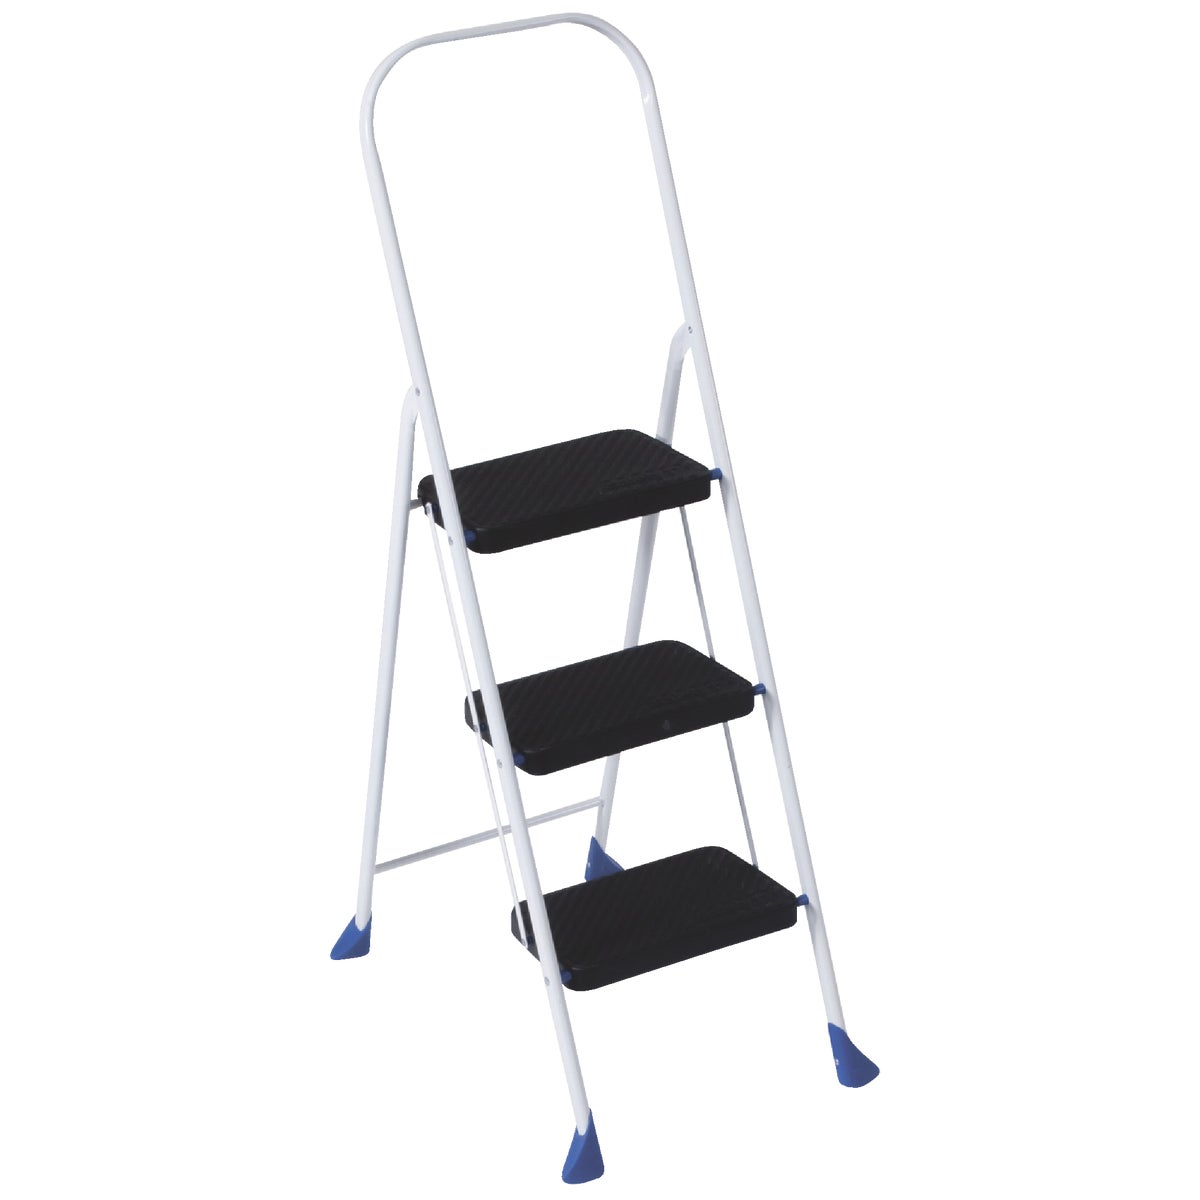 3-STEP STEP STOOL - 11-402CLGG2 by Cosco    J Myalls